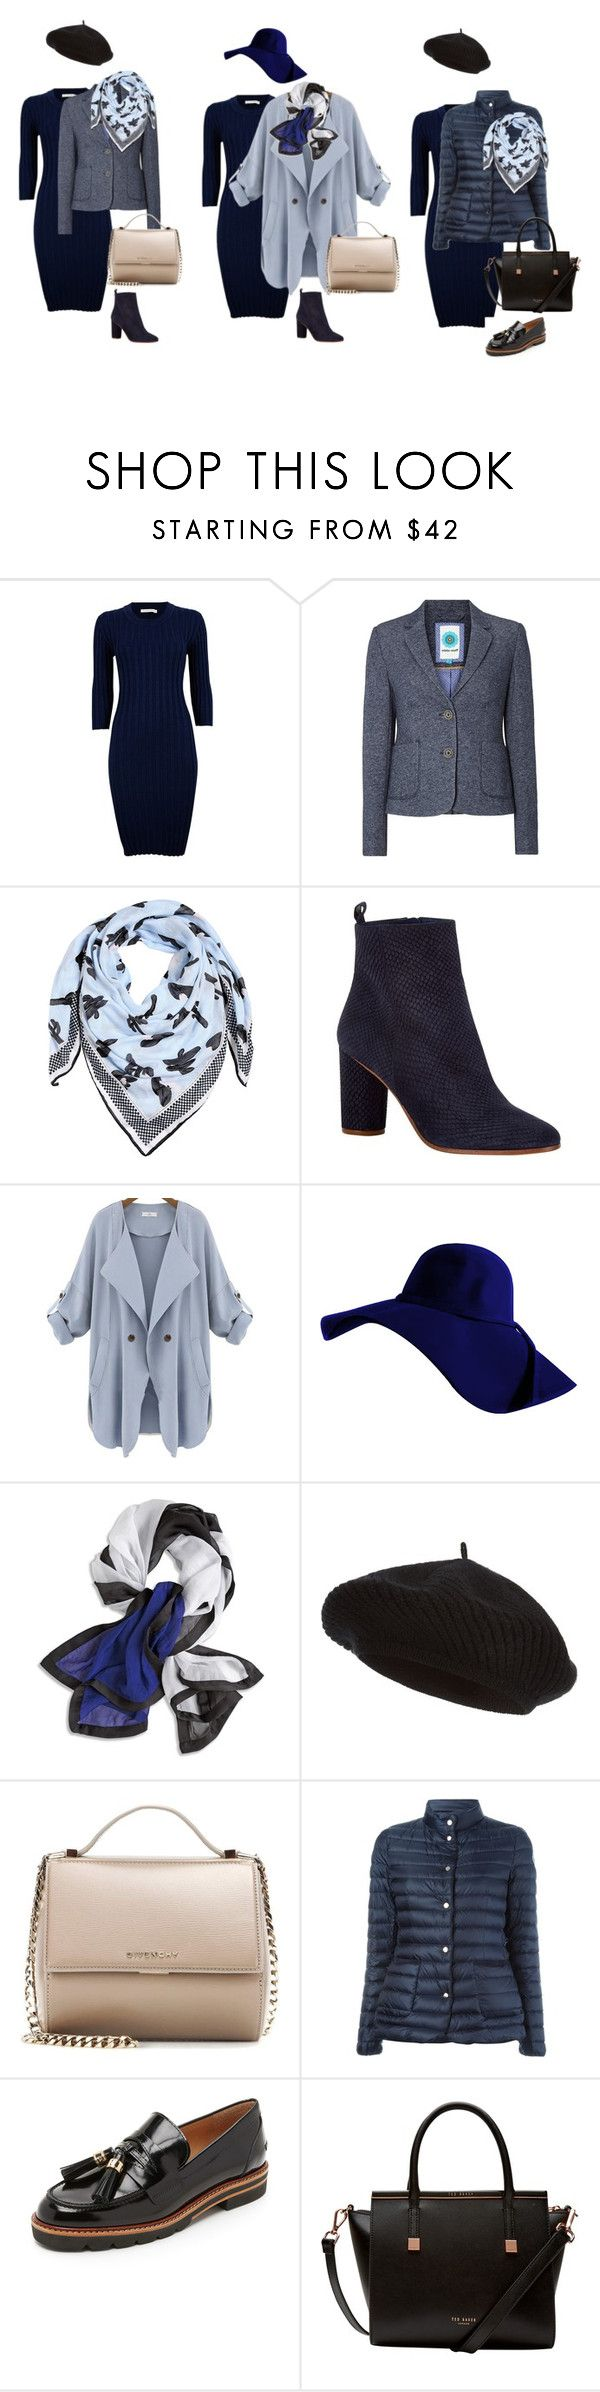 """образы на основе платья"" by mantissa-silver on Polyvore featuring мода, White Stuff, Kenzo, Maje, Chico's, Harrods, Givenchy, Moncler, Stuart Weitzman и Ted Baker"